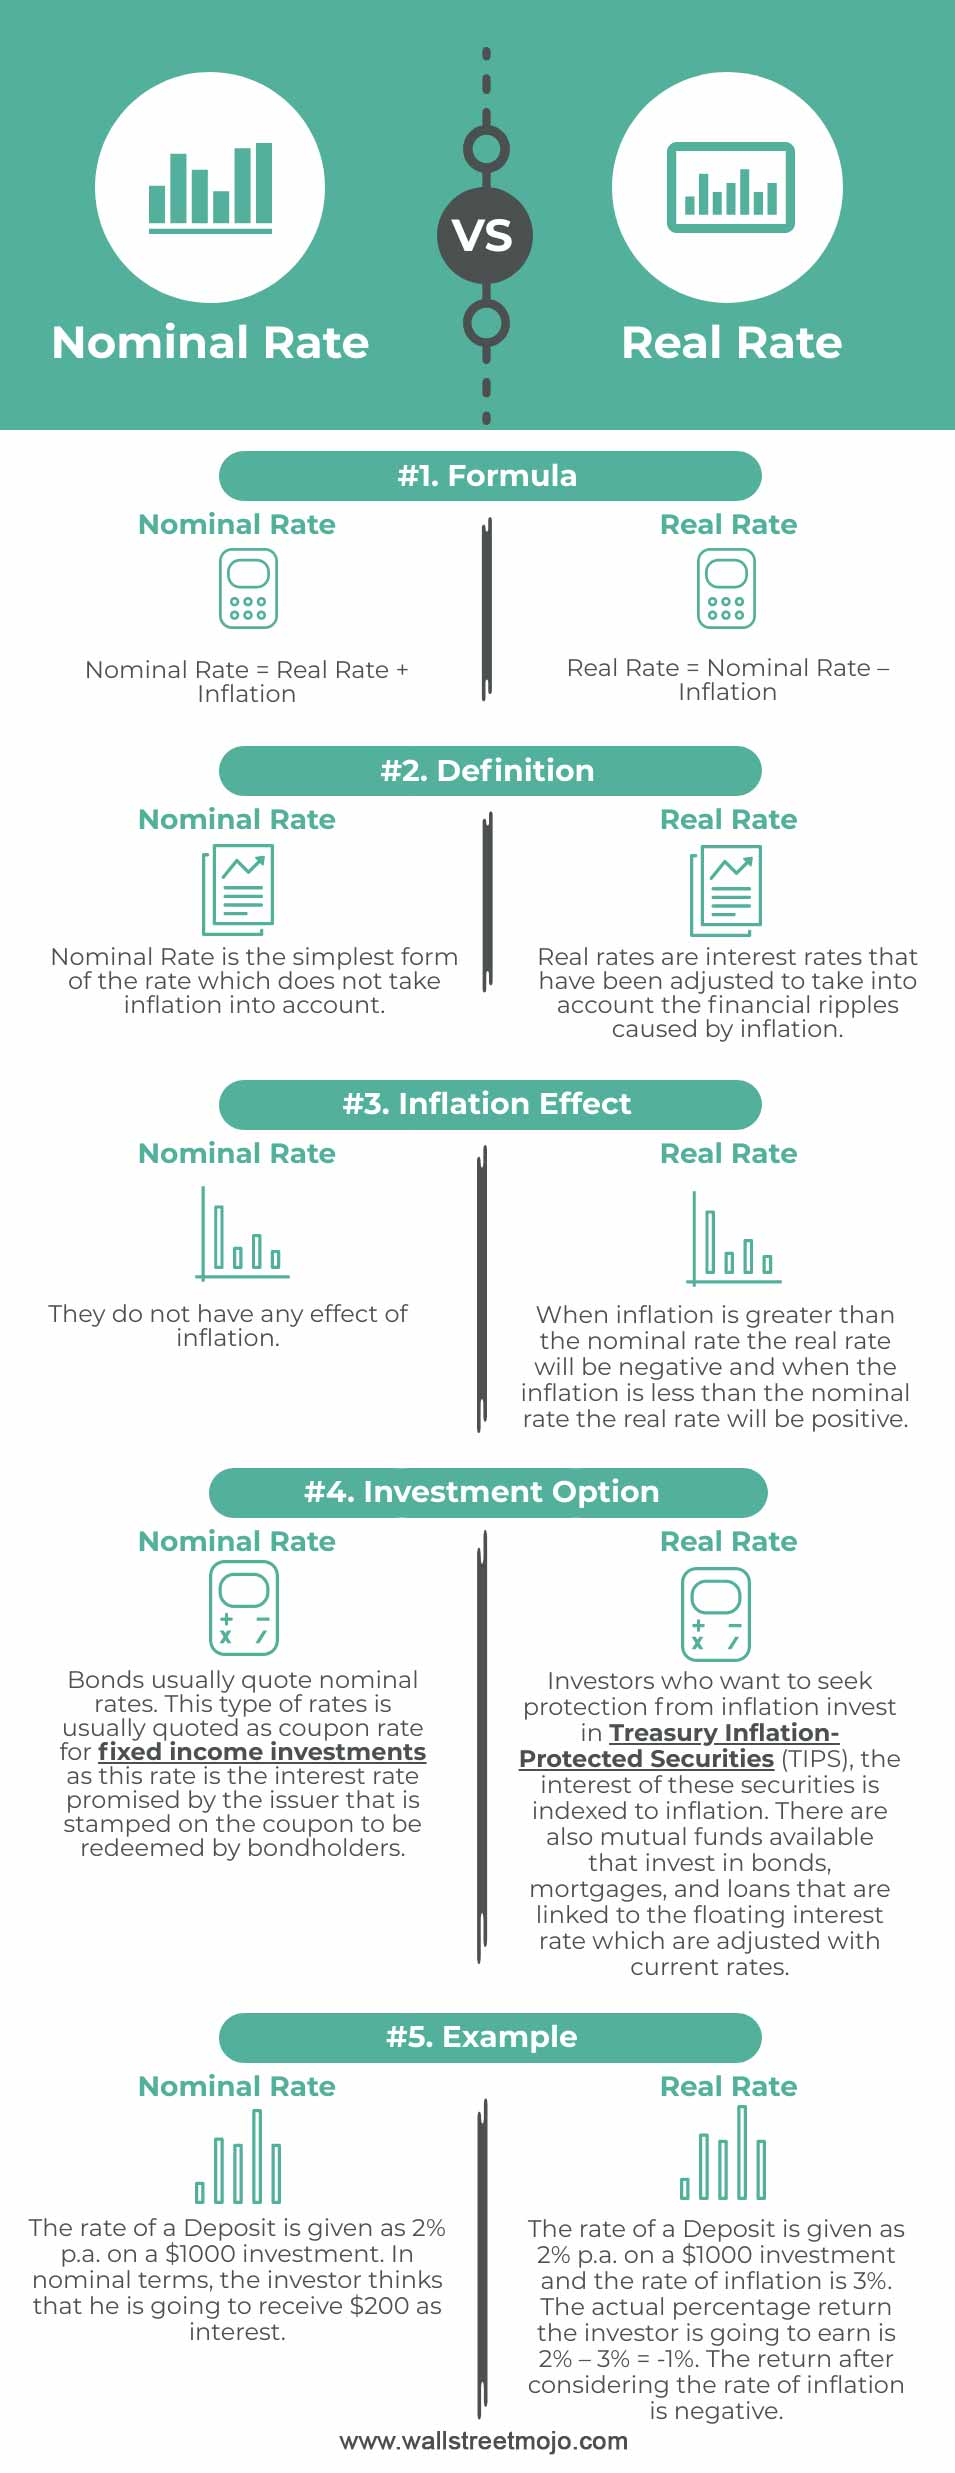 Nominal-Rate-vs-Real-Rate-info